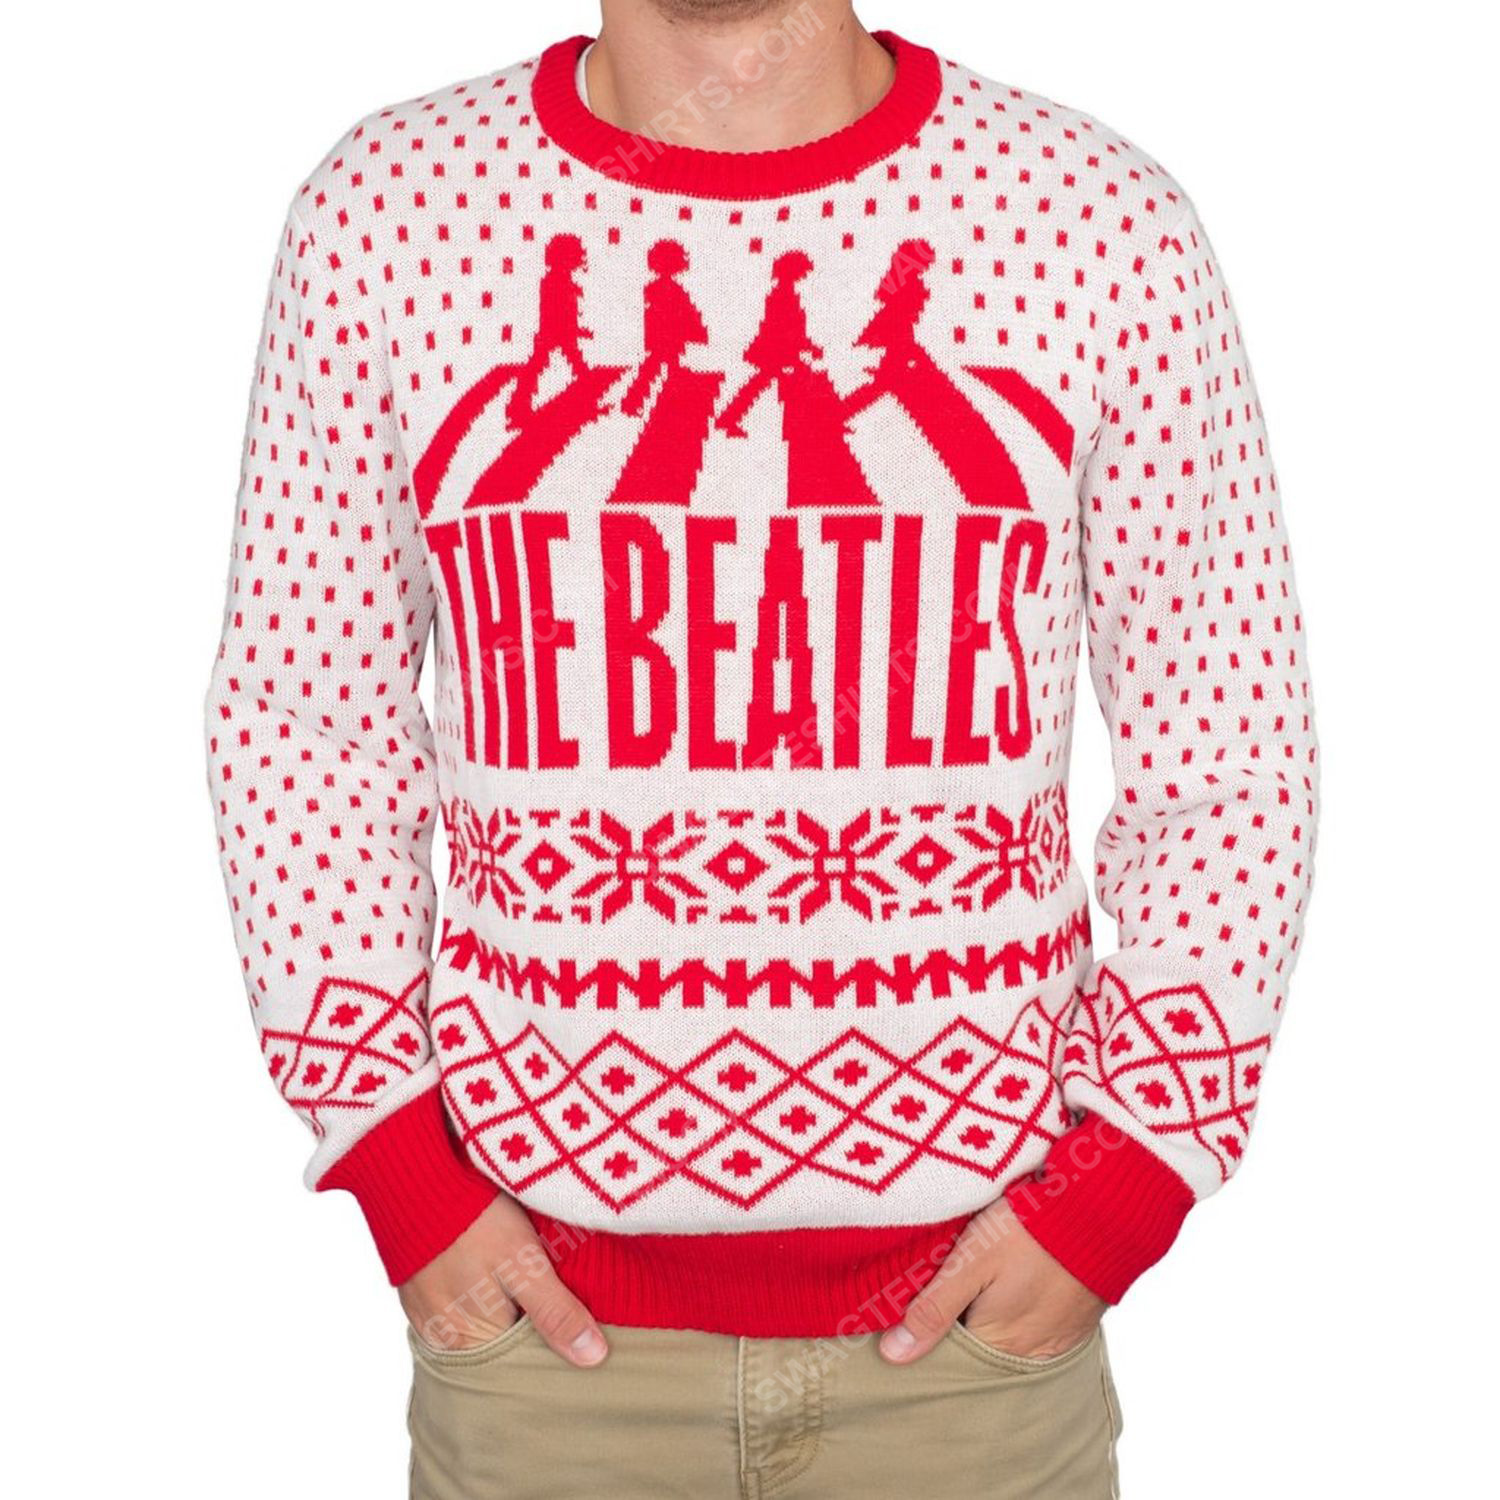 The beatles abbey road full print ugly christmas sweater 1